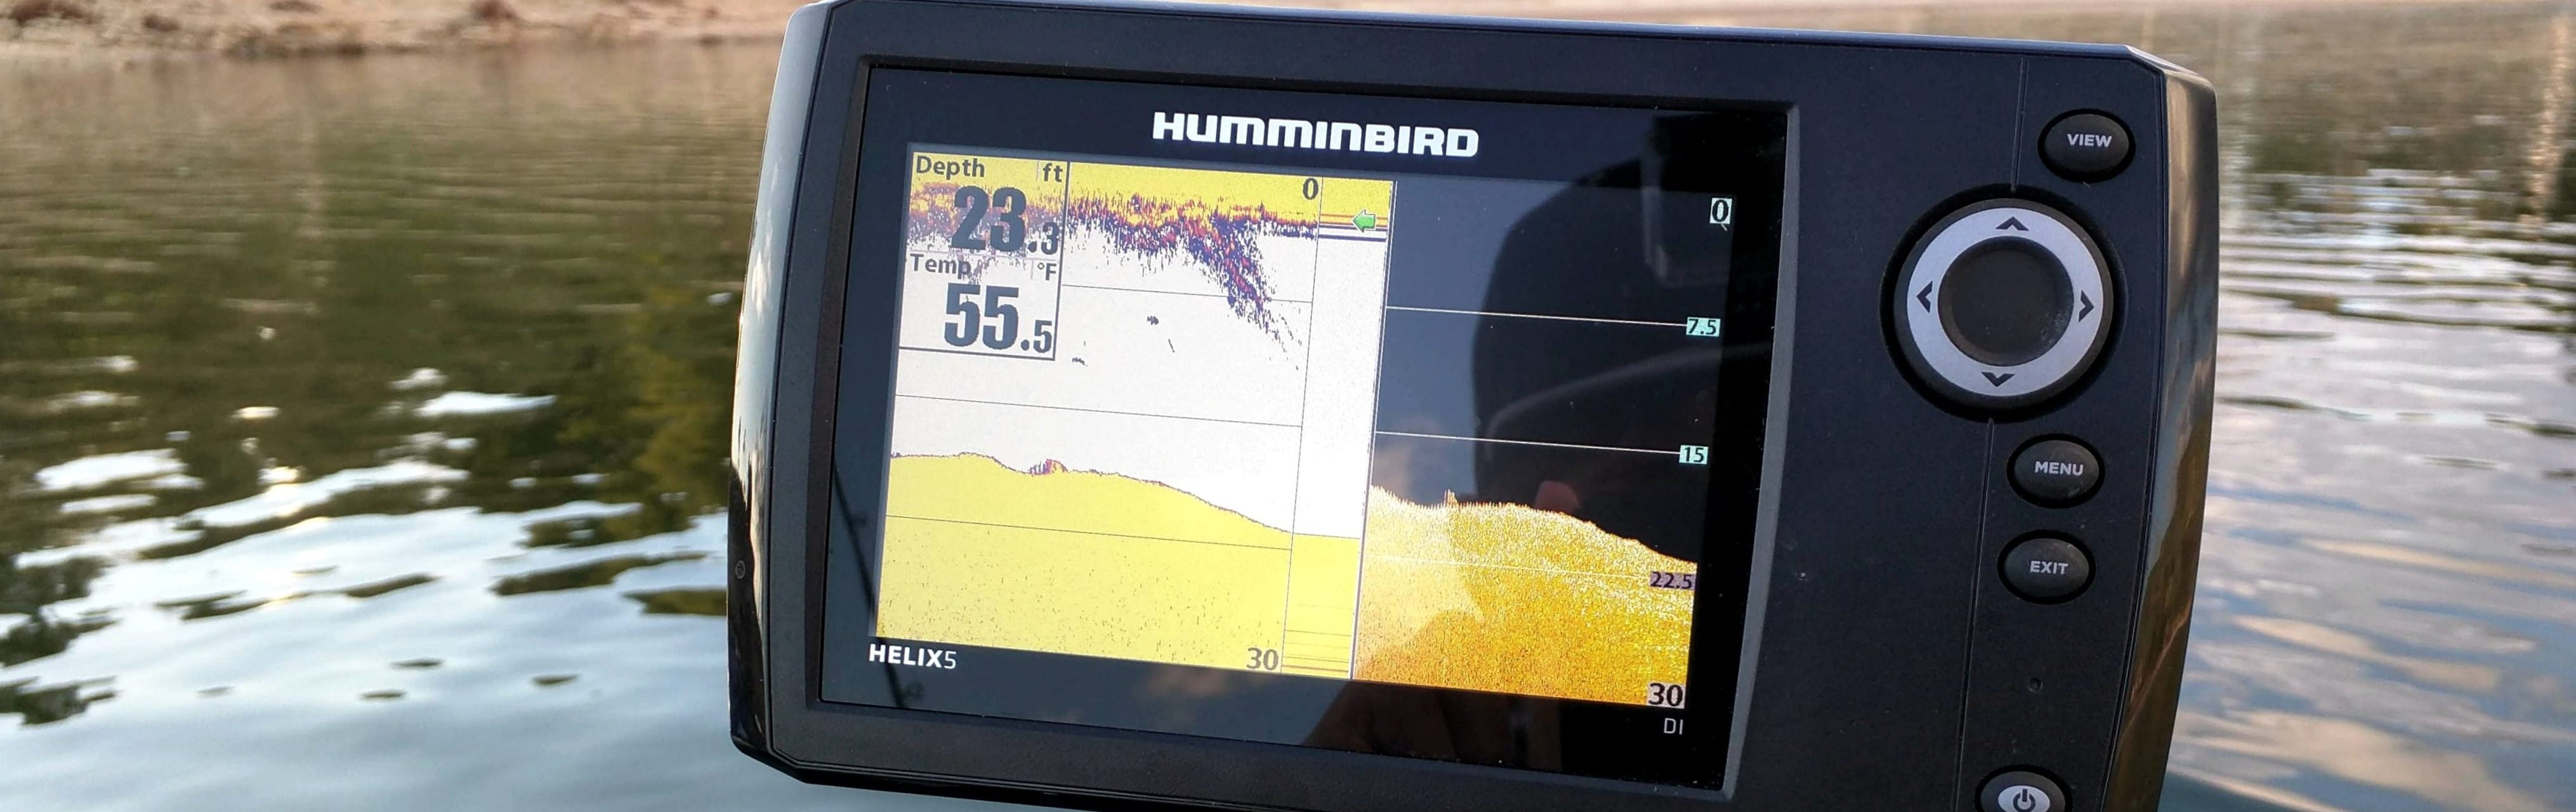 Best Fish Finder GPS Combos Reviewed in Detail